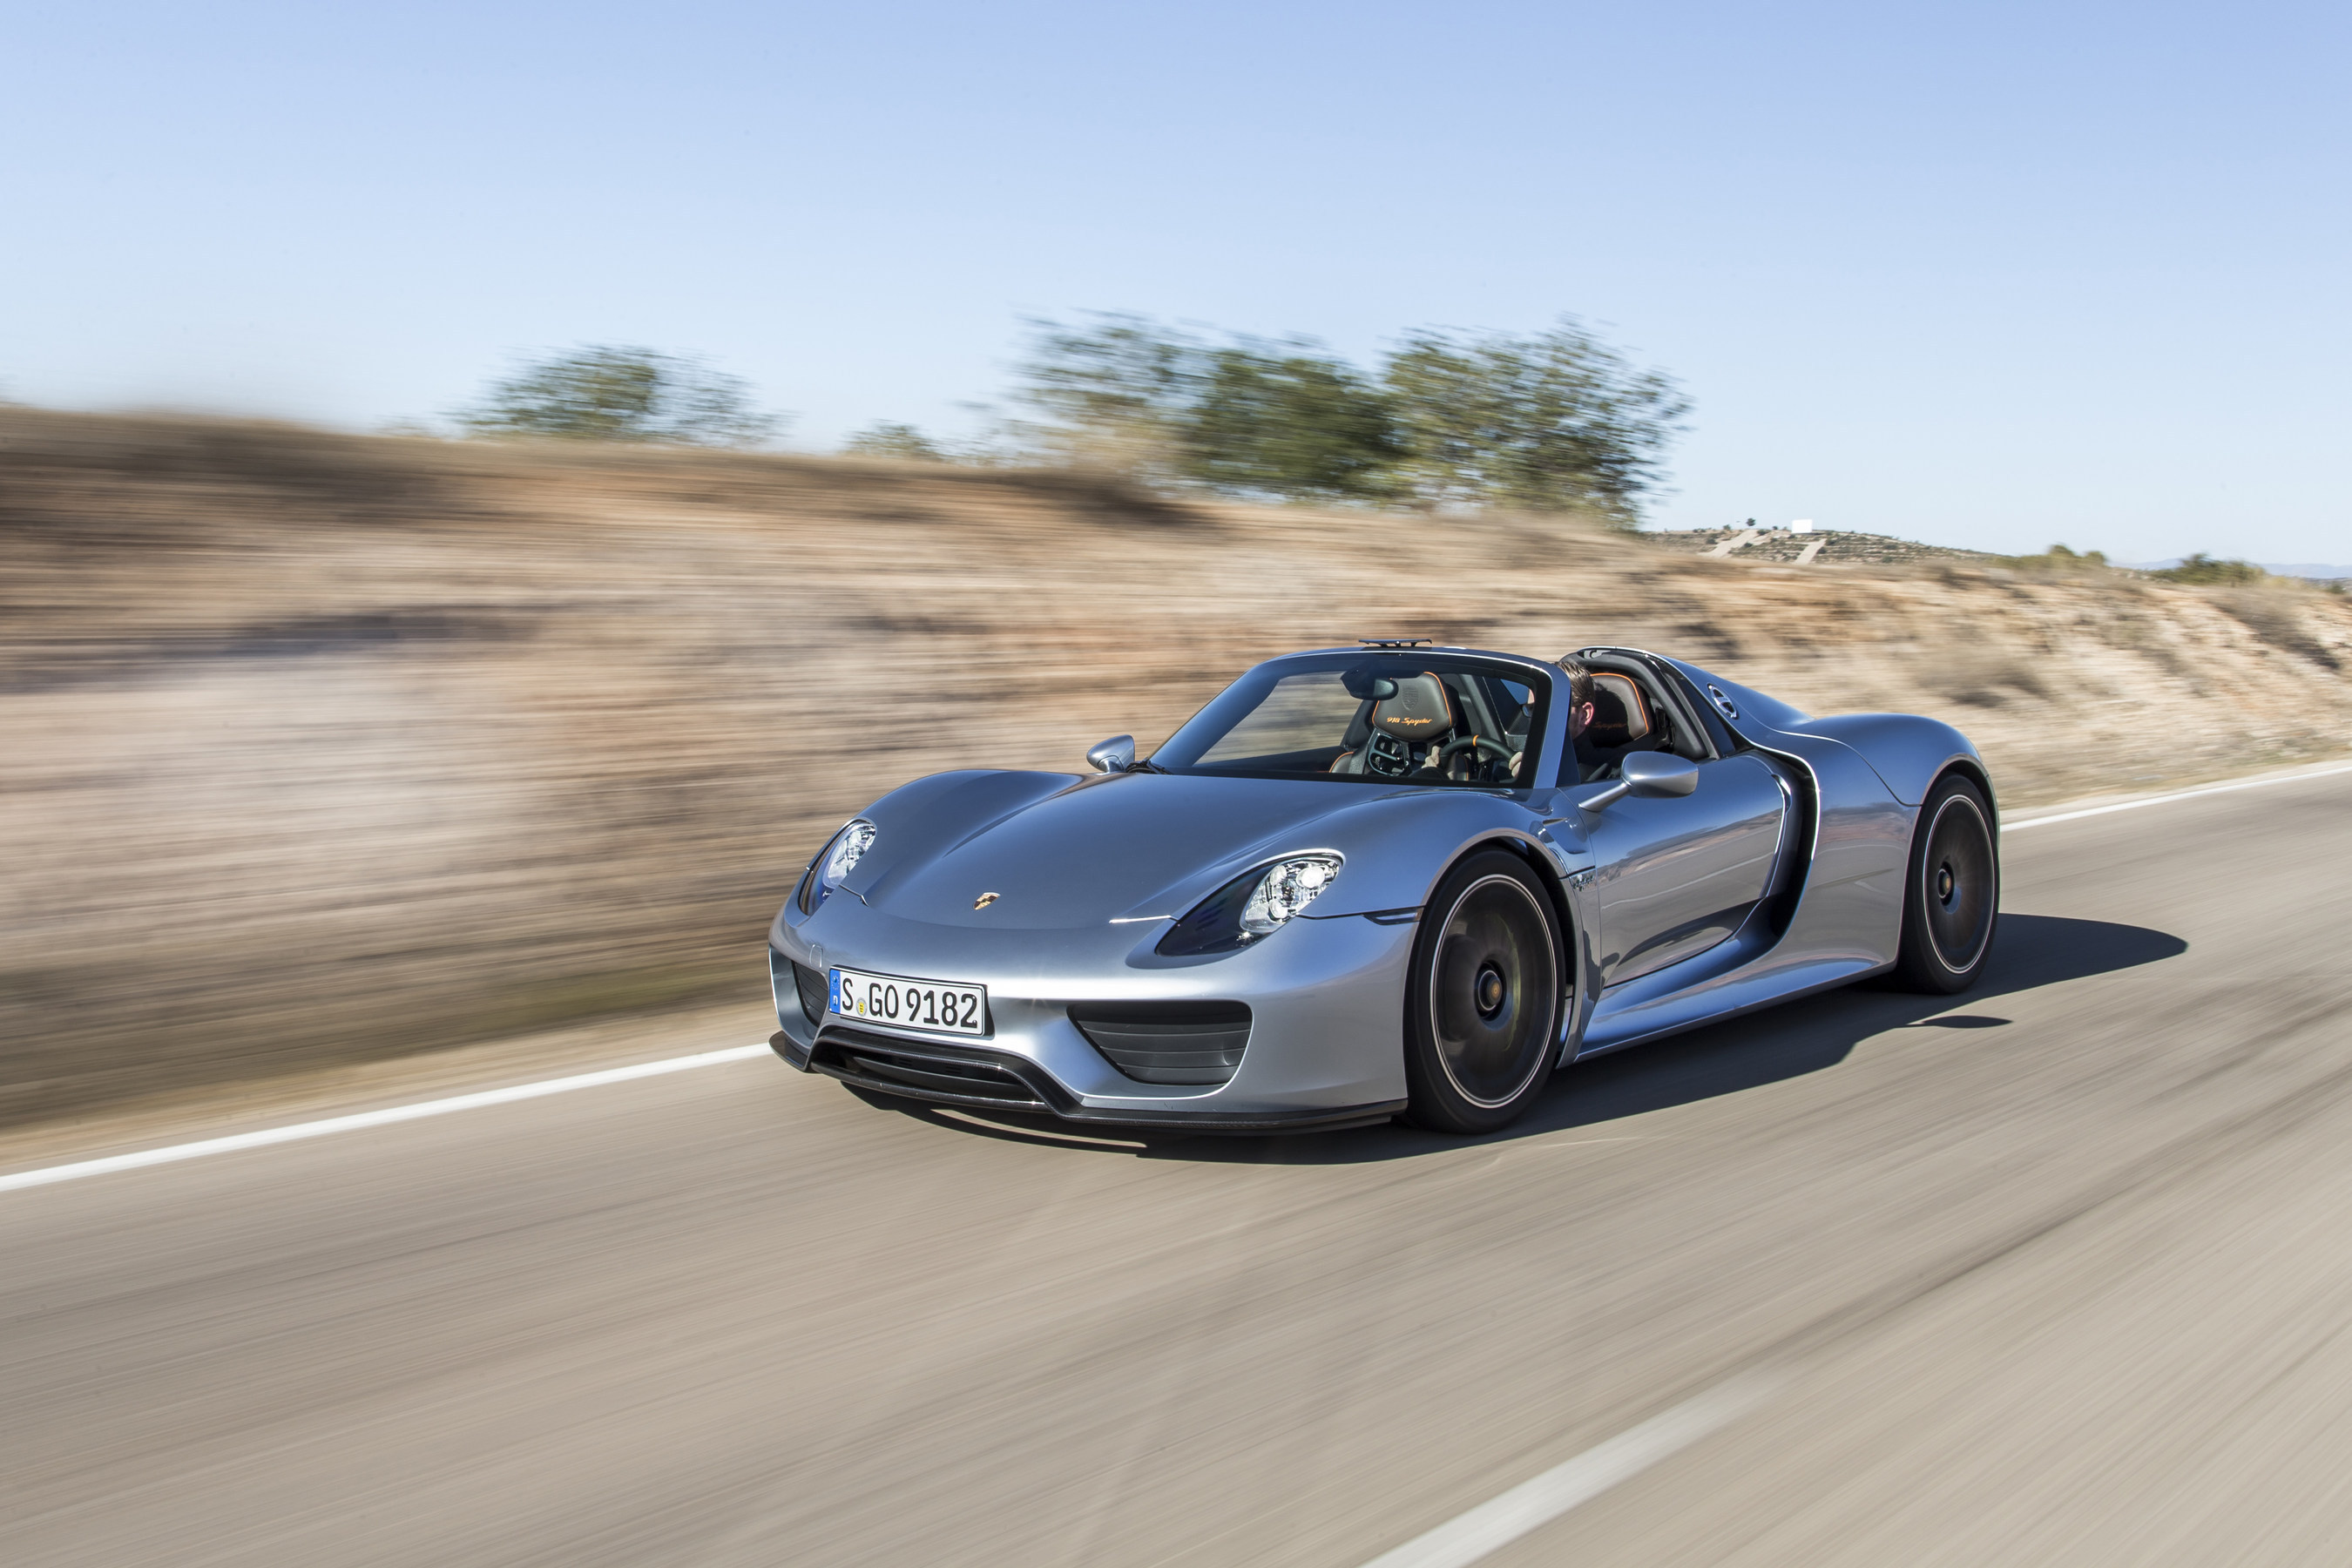 The porsche 918 spyder wins the robb report 2015 car of the year award